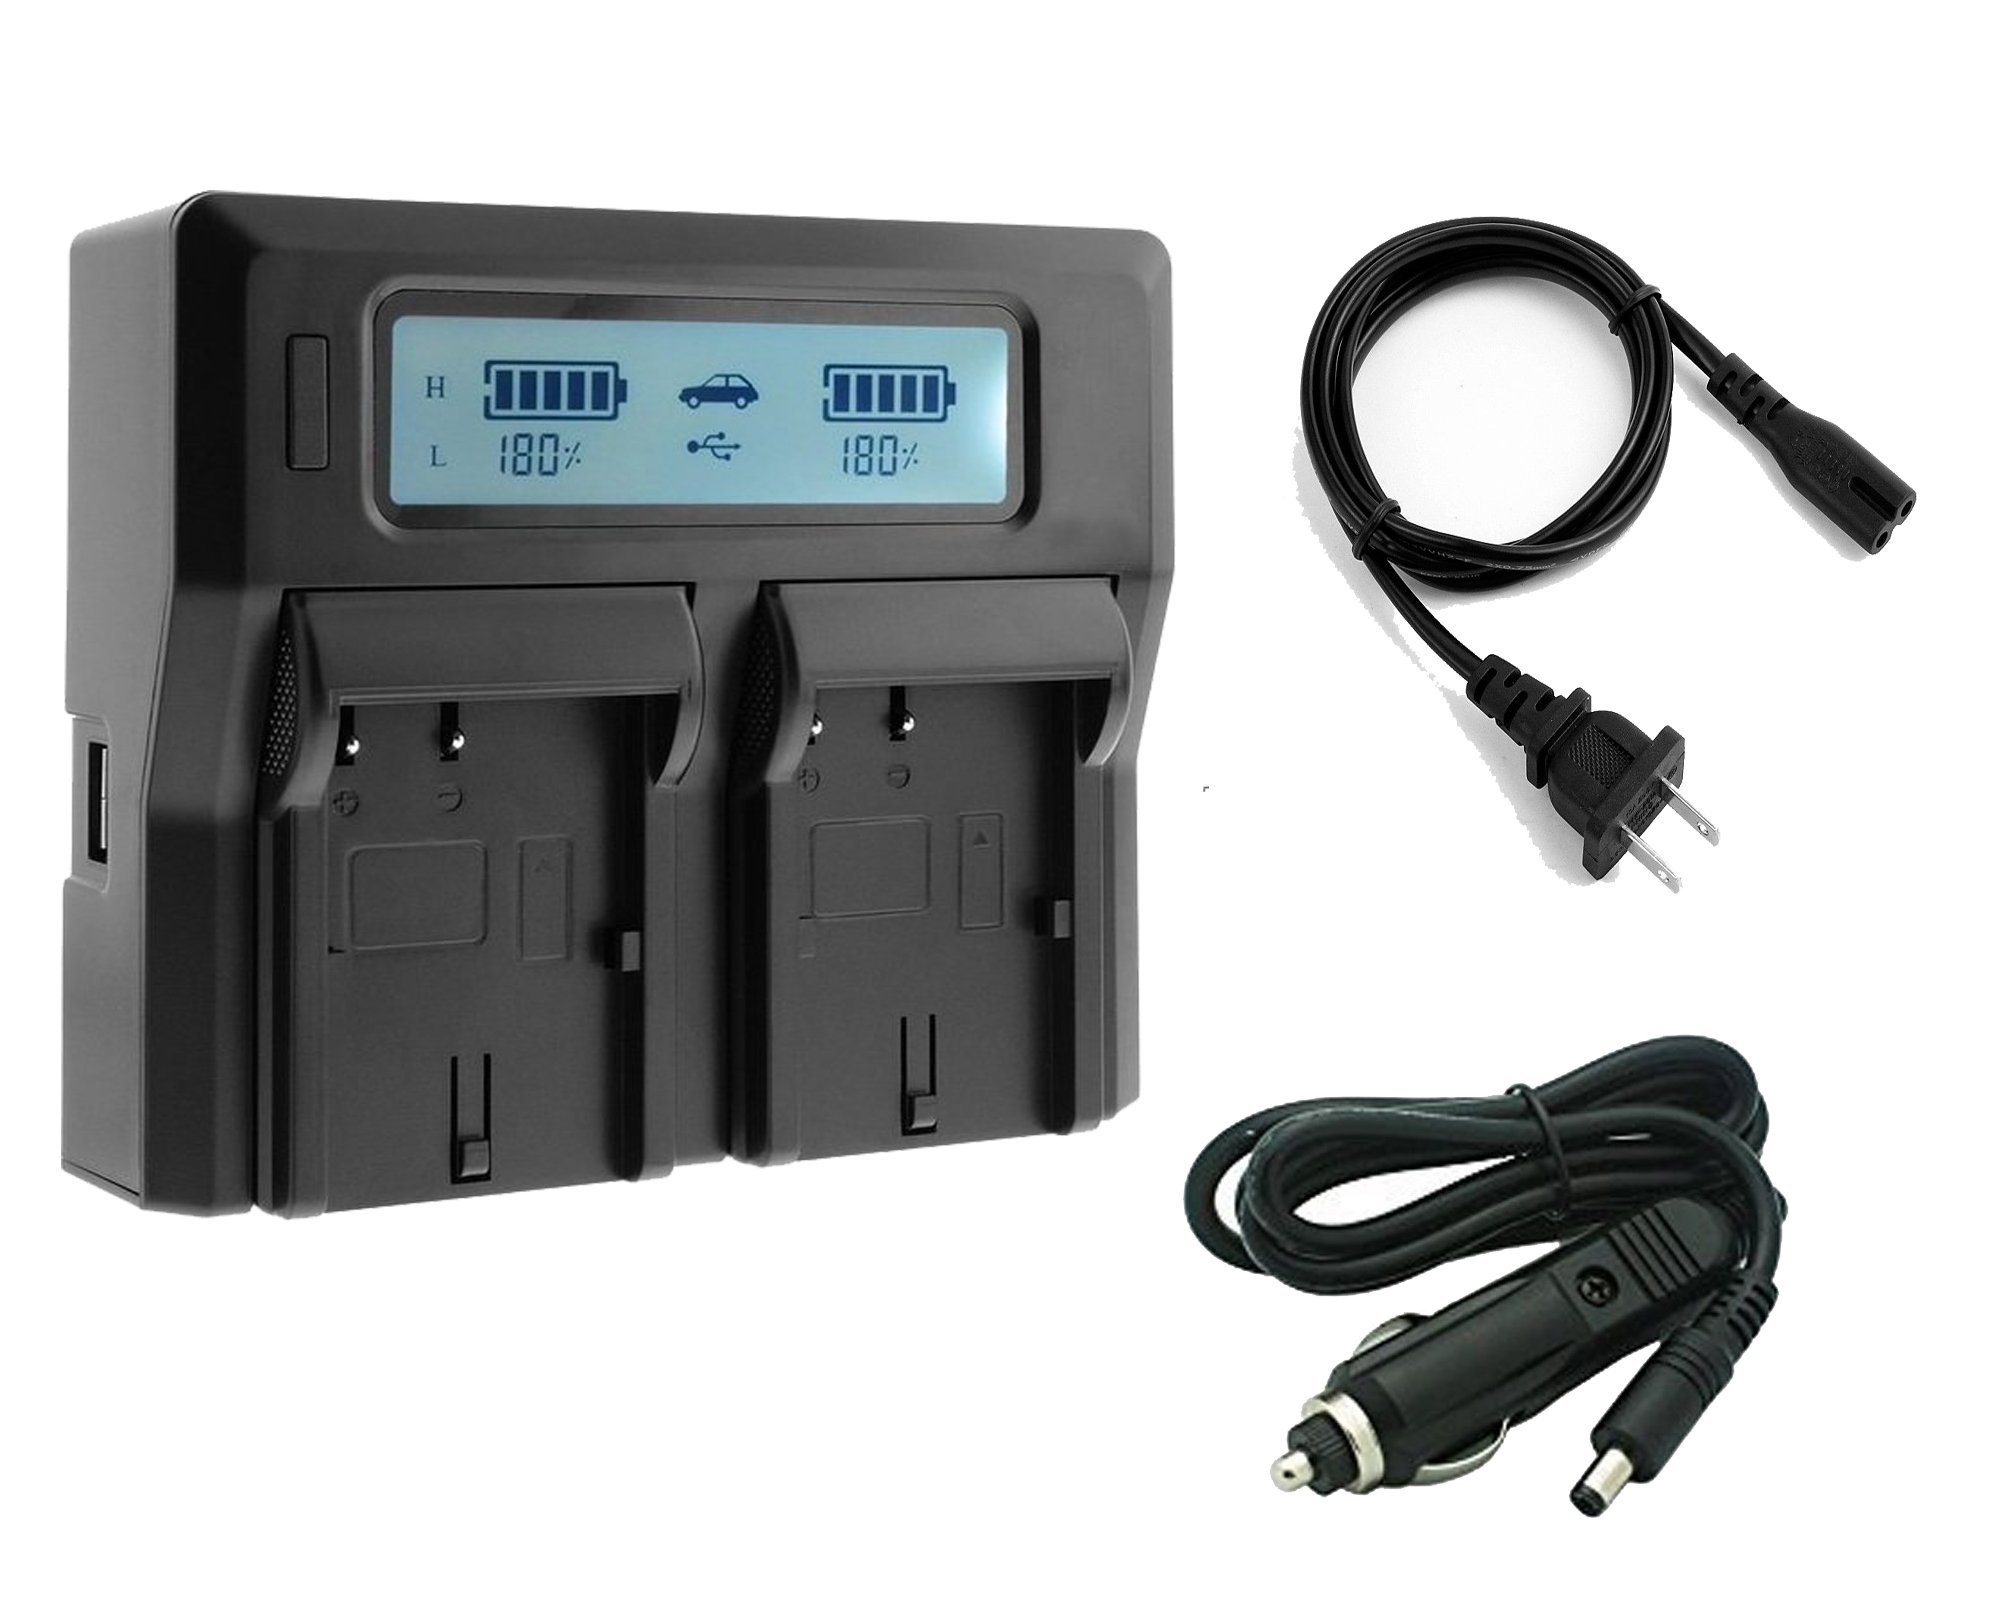 NP FV50, NPFV50, NP FV70, NPFV70, NP FV100, NPFV100 Battery Charger Renheng Dual LCD Display Fast Charge Digital Camcorder Battery Charger for Sony FDR-AXP55,FDR-AX40,HDR-CX450 by SR SUN ROOM